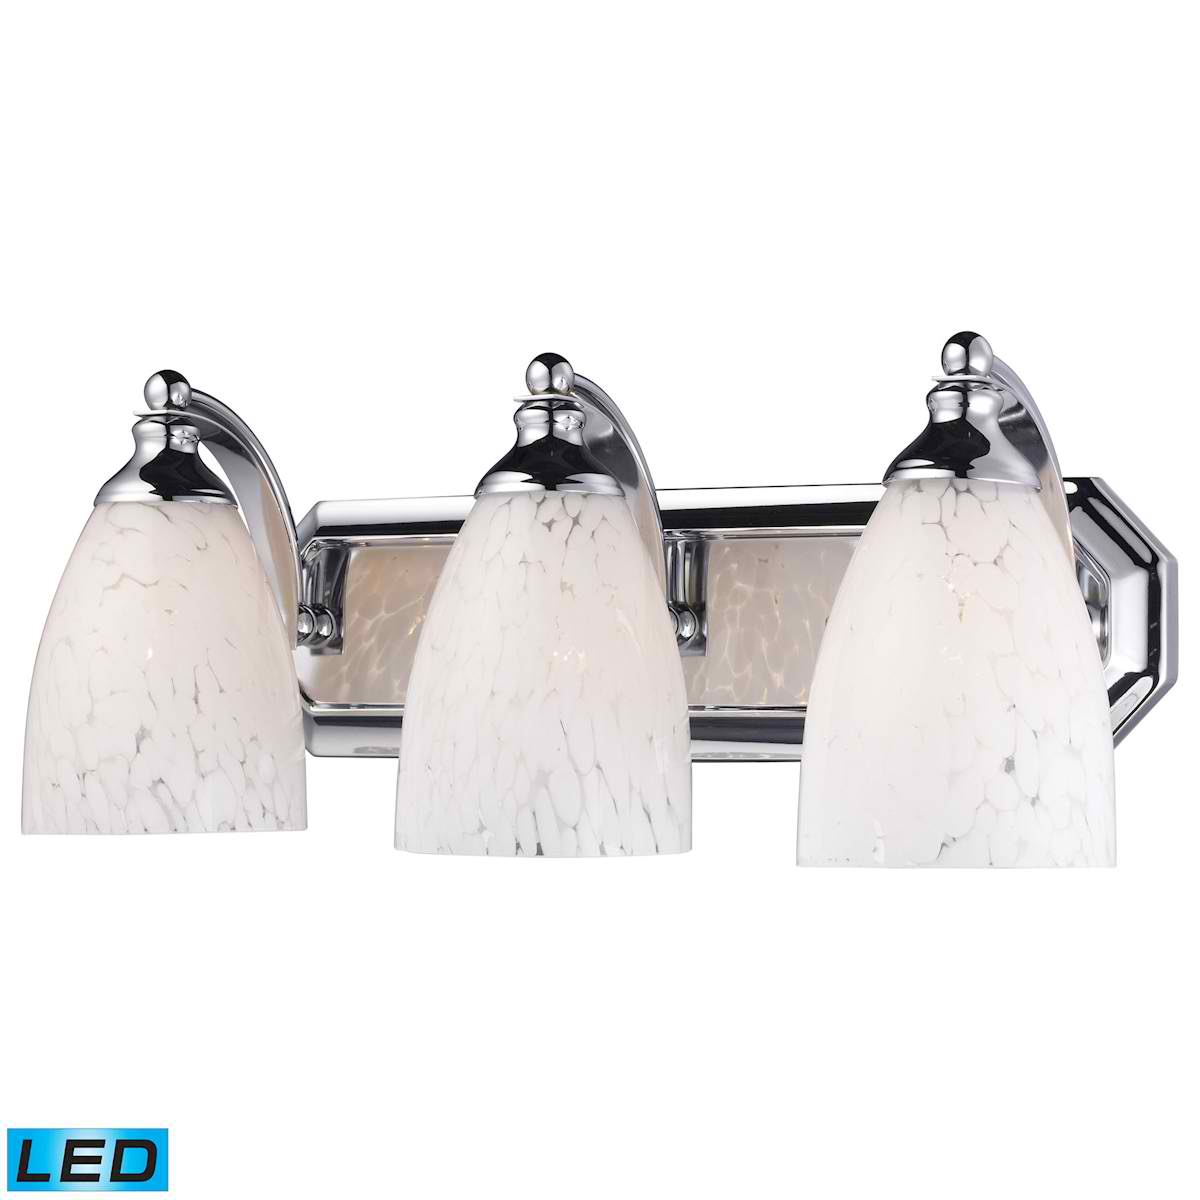 3 Light Vanity in Polished Chrome and Snow White Glass - LED, 800 Lumens (2400 Lumens Total) with Full Scale